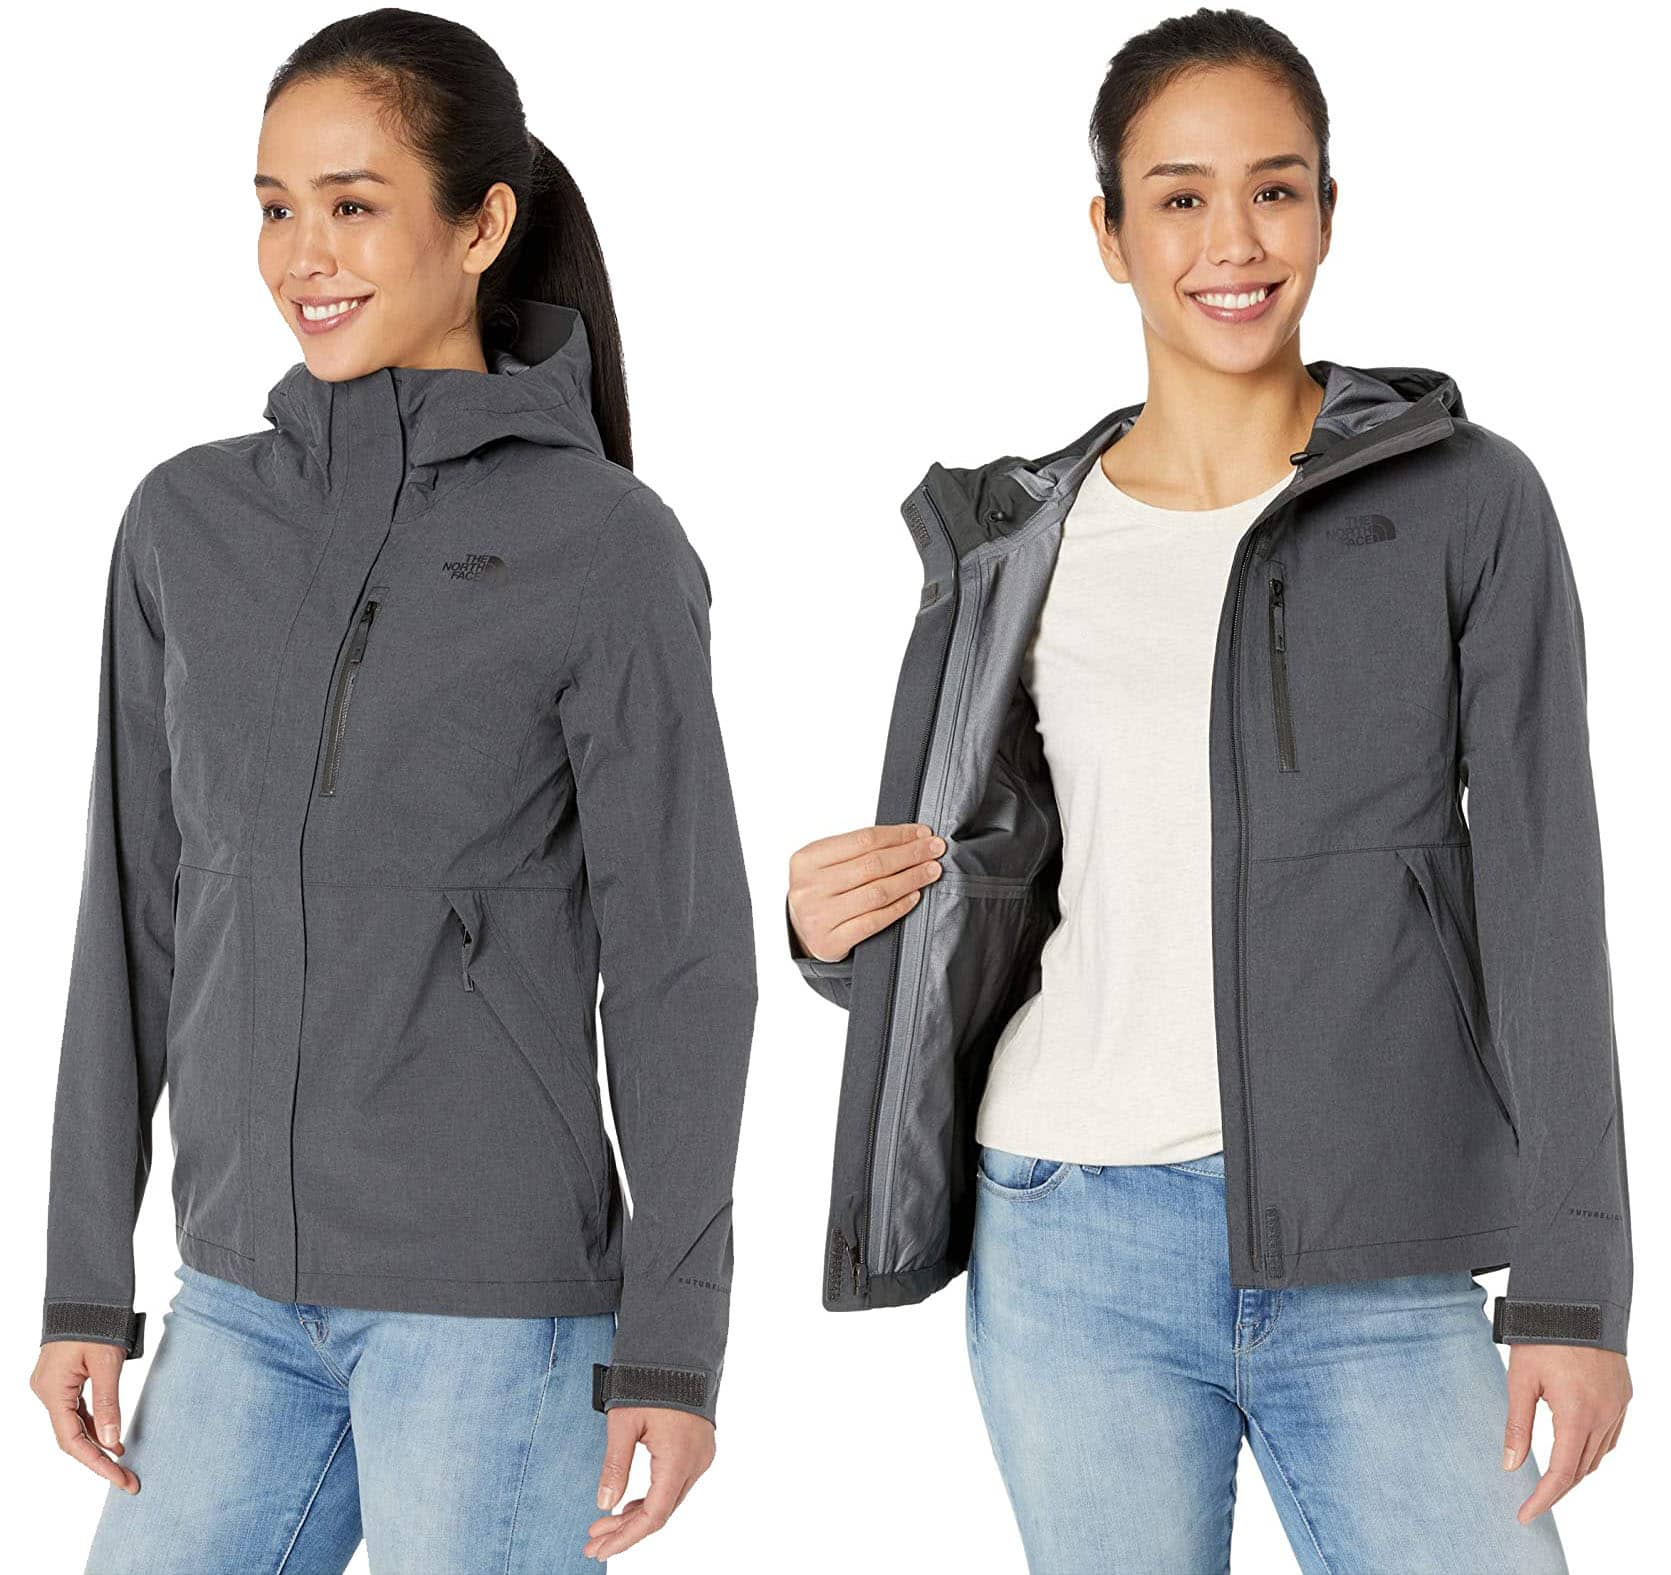 Made from recycled fabric, this lightweight rain jacket provides full coverage with an adjustable hood and hook-and-loop cuff tabs